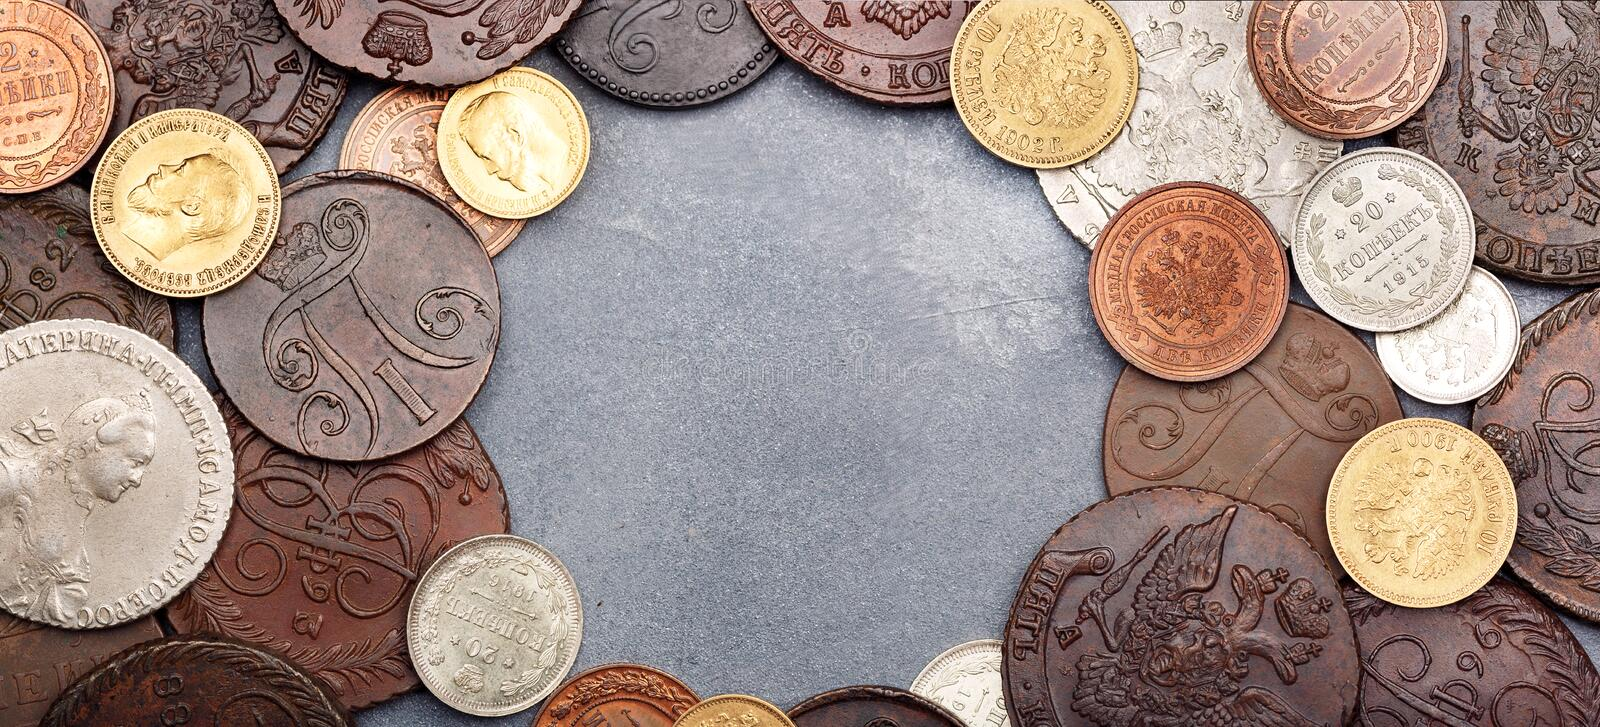 Numismatics. Old collectible coins made of silver, gold and copper on a table. Top view stock photo